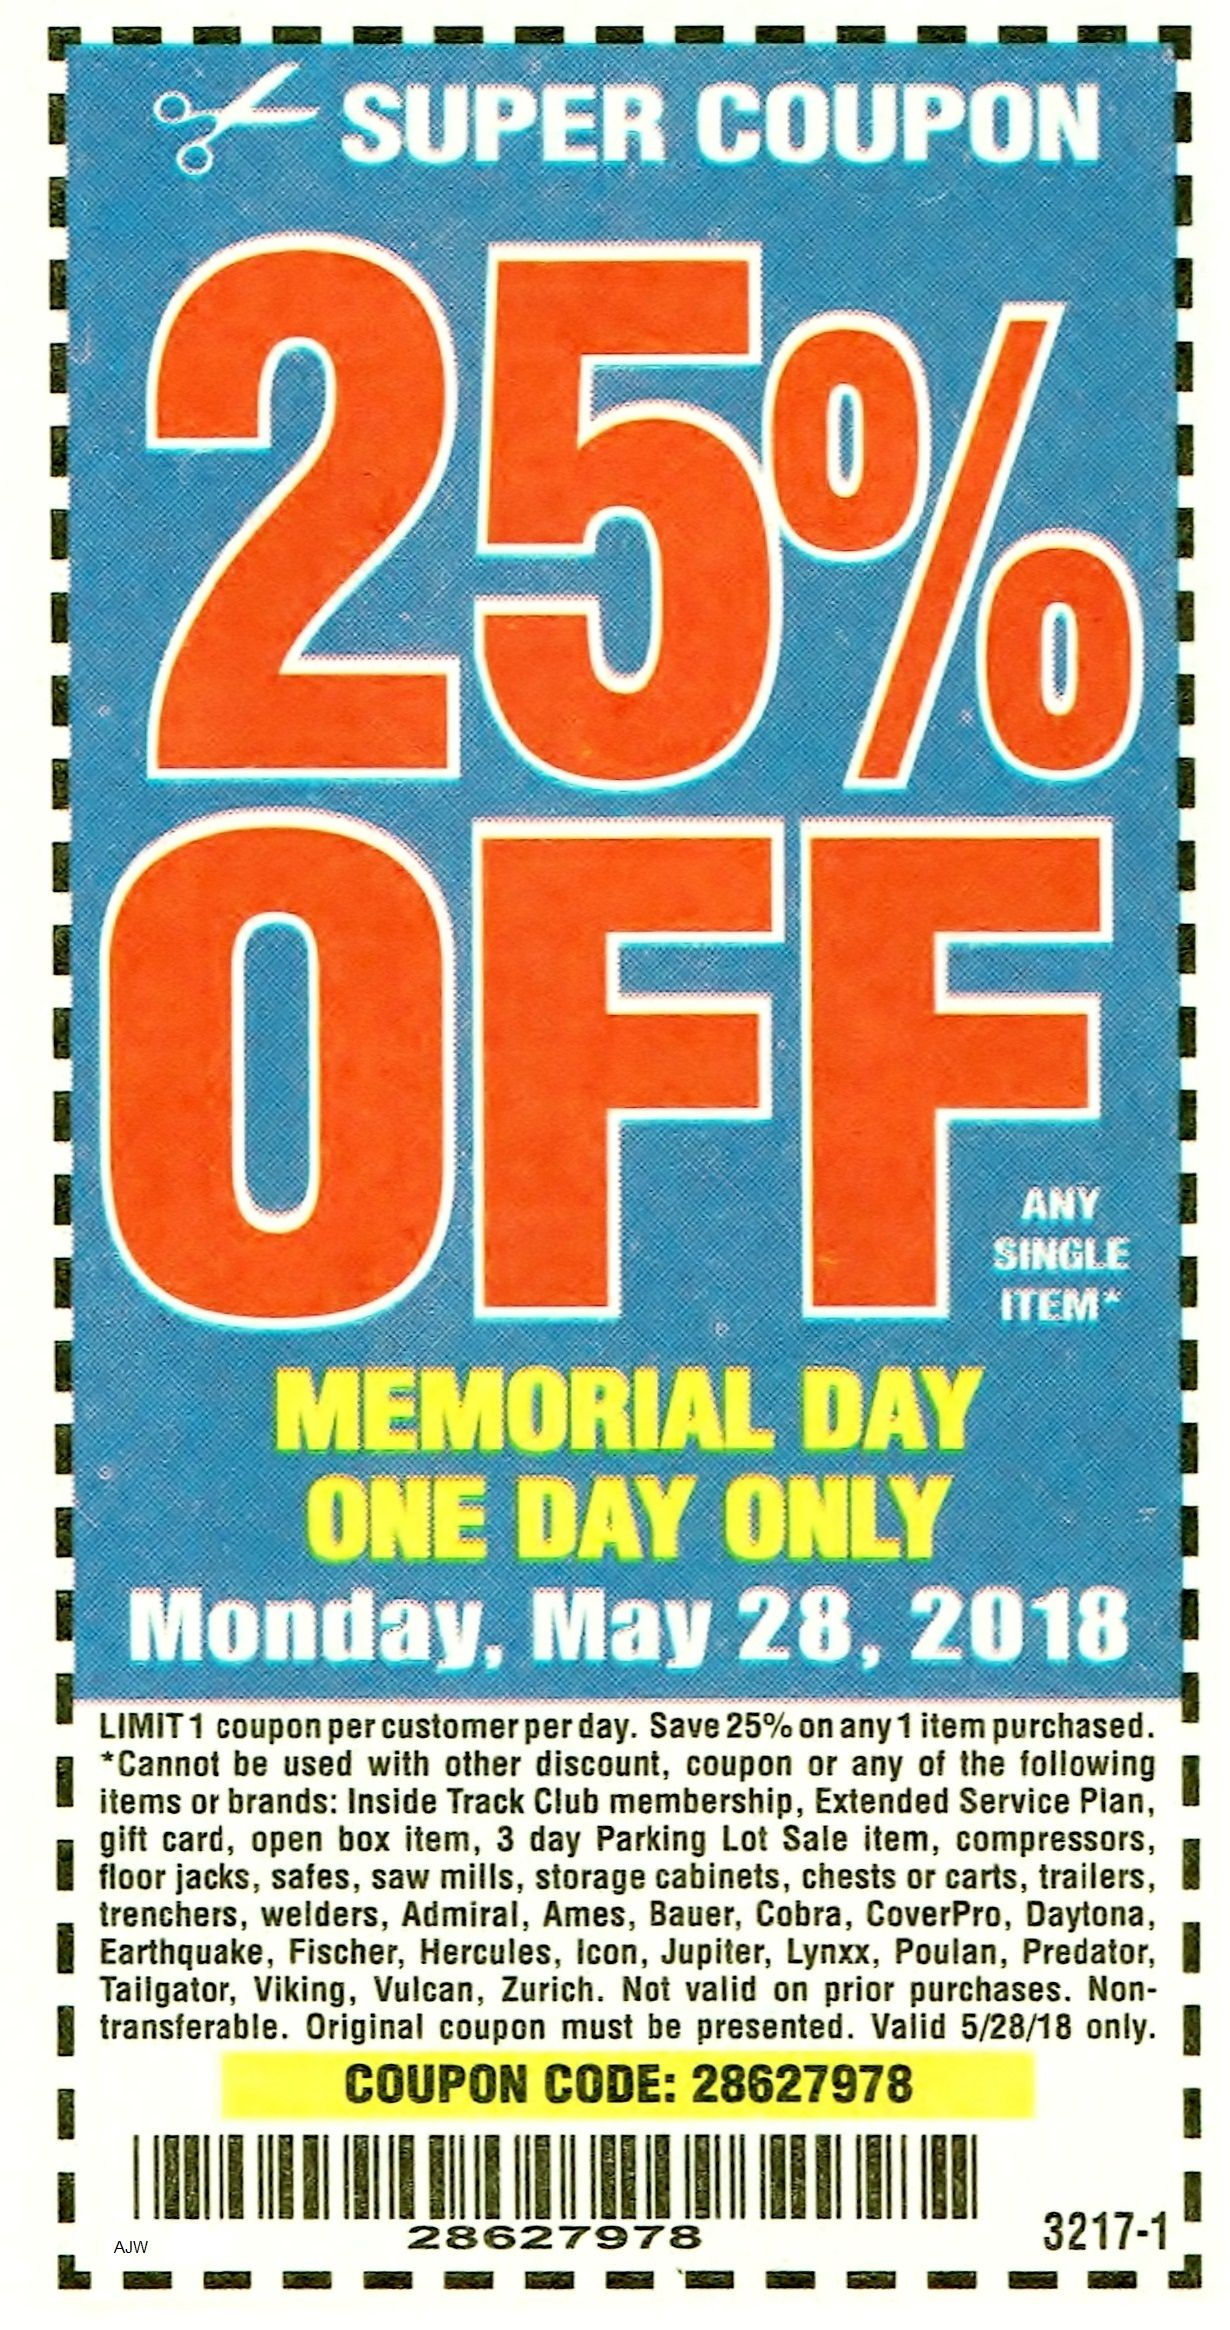 Harbor Freight 25 Percent Off Coupon Harbor Freight Coupon Harbor Freight Tools Coupons